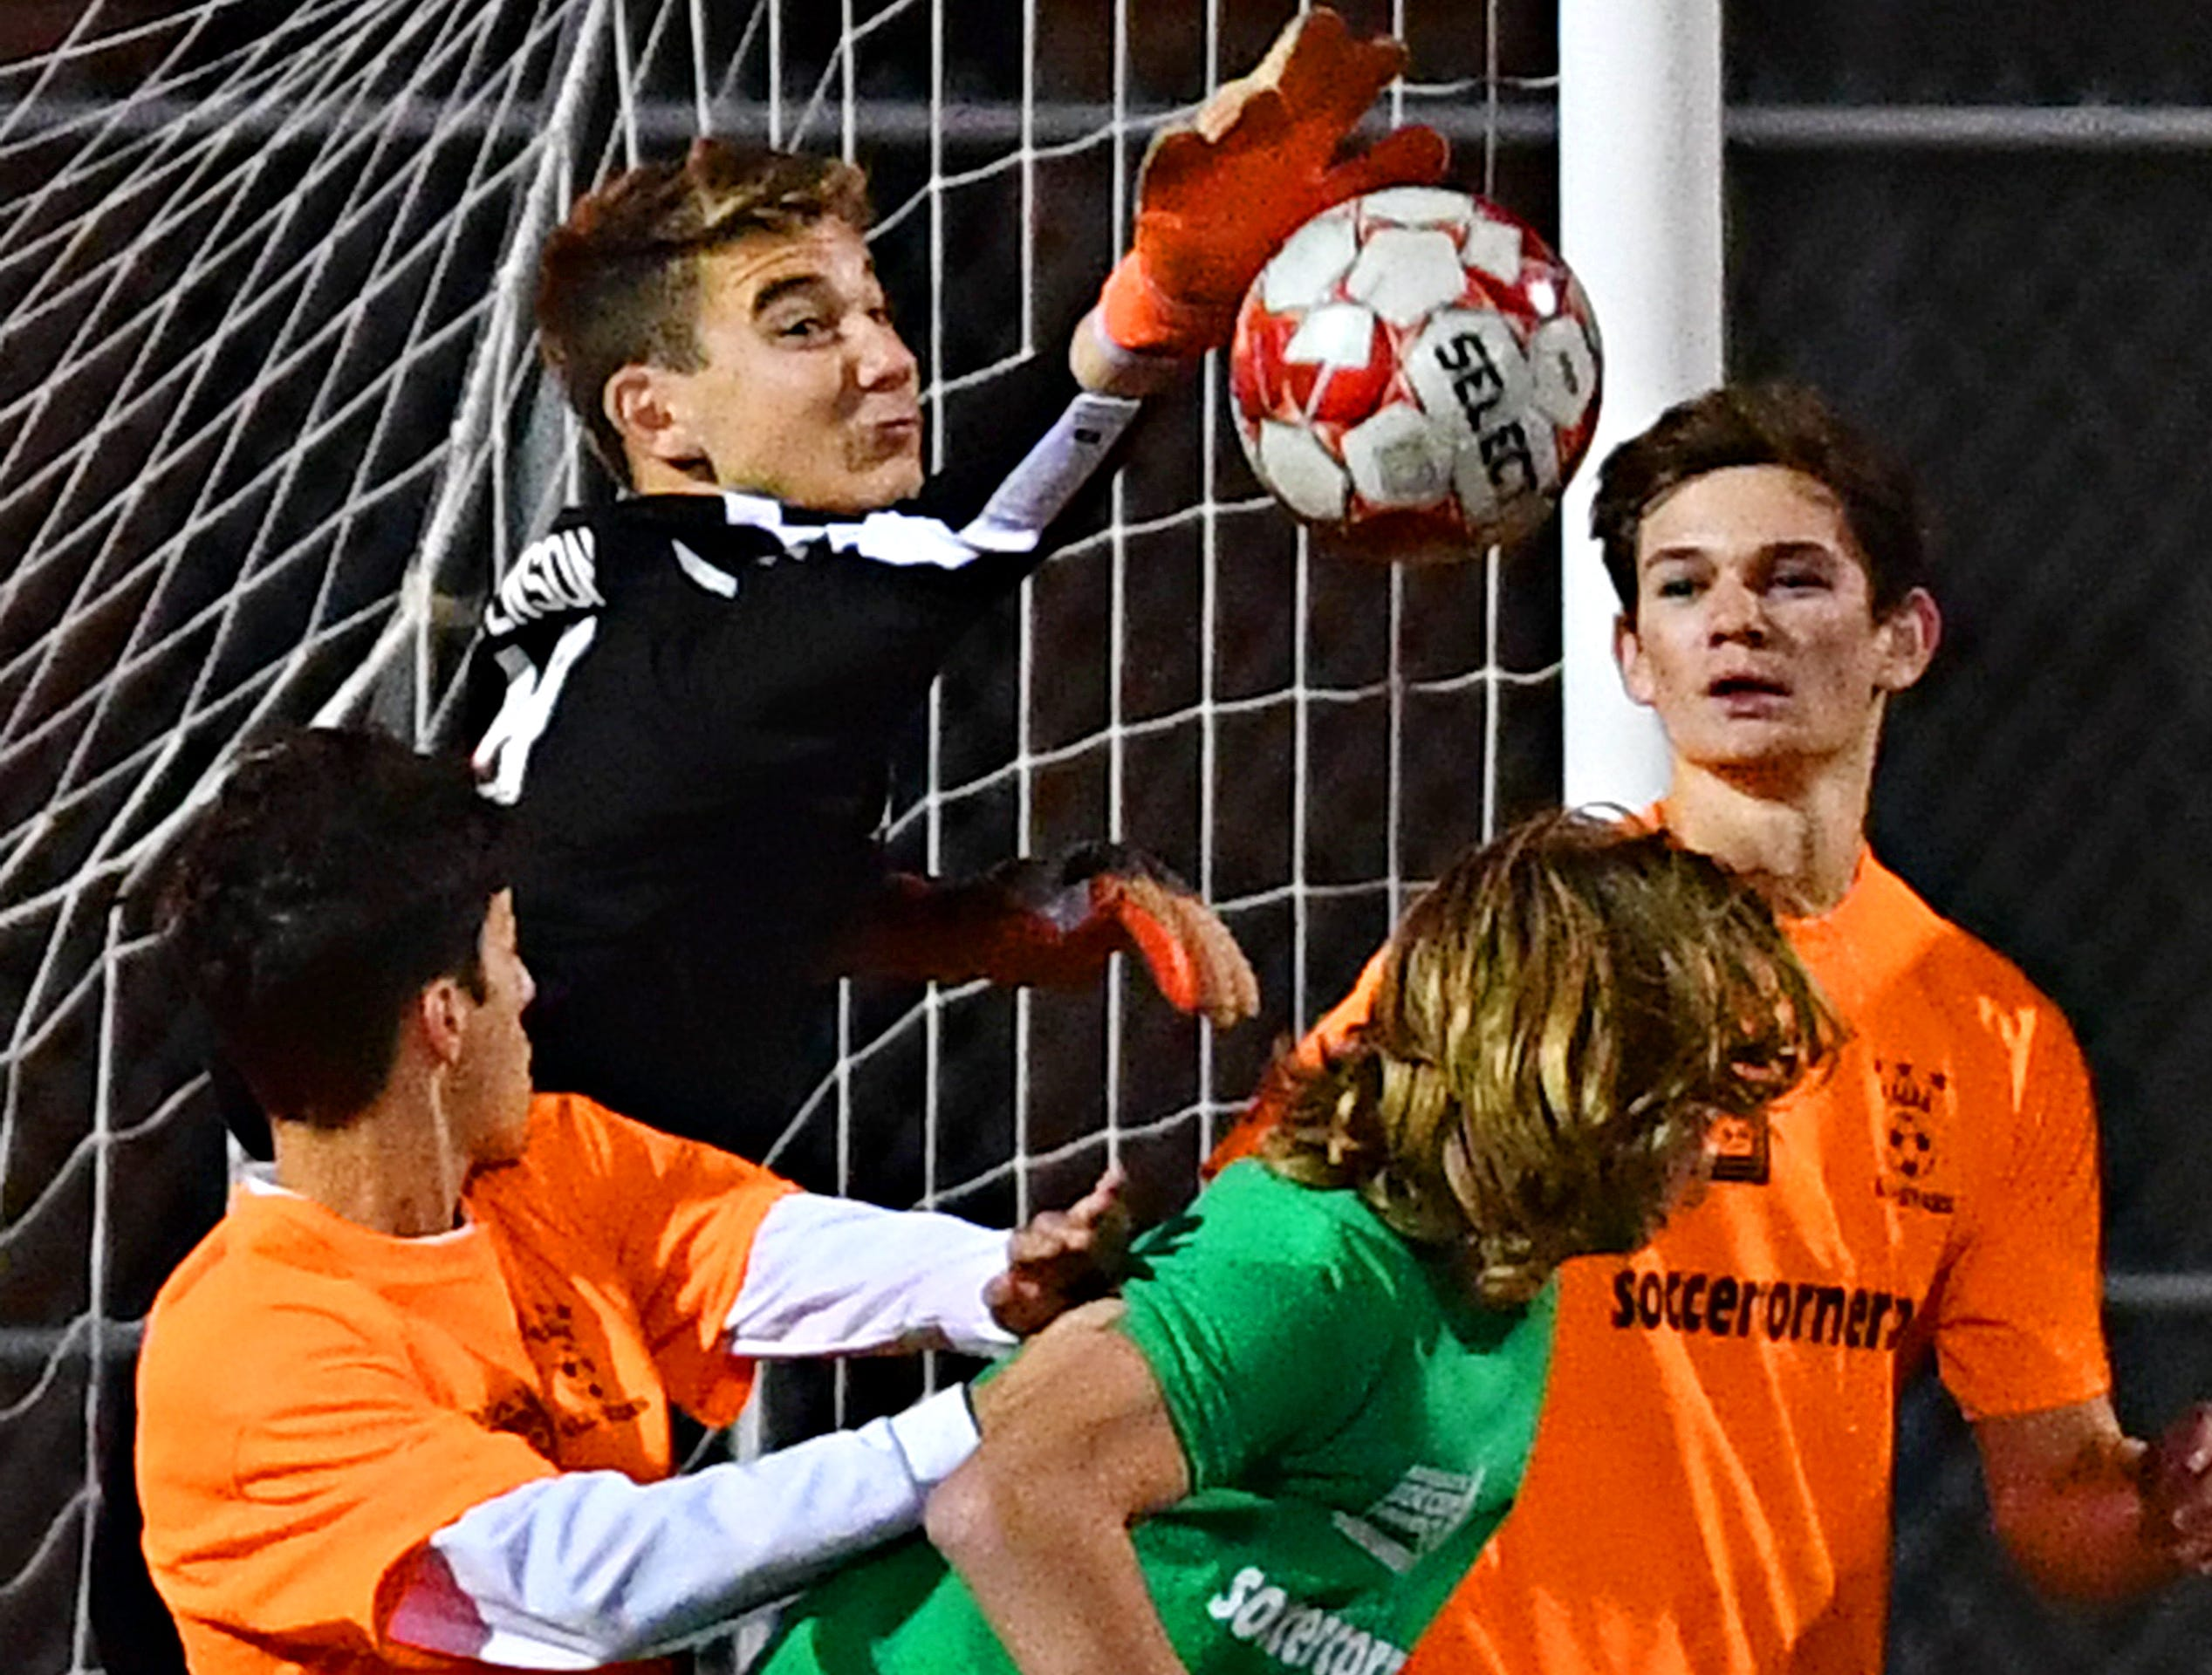 Athletes compete during the YAIAA Boys' Soccer Senior All Star Game action at Horn Field in Red Lion, Wednesday, Nov. 7, 2018. Dawn J. Sagert photo